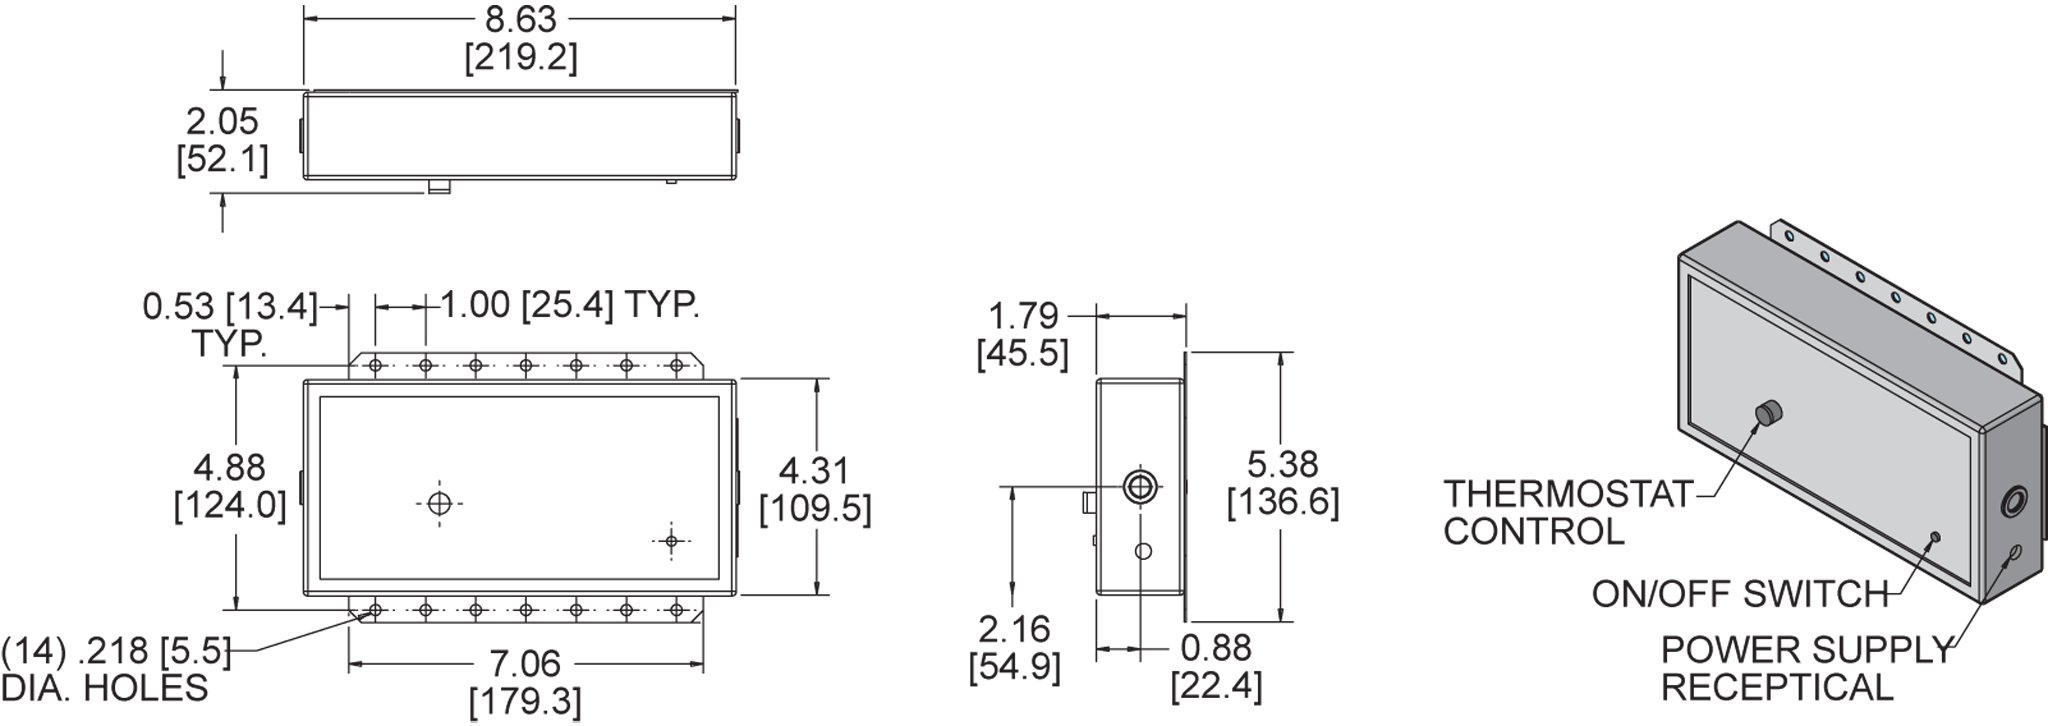 Lead-Lag Controller General Arrangement Drawing